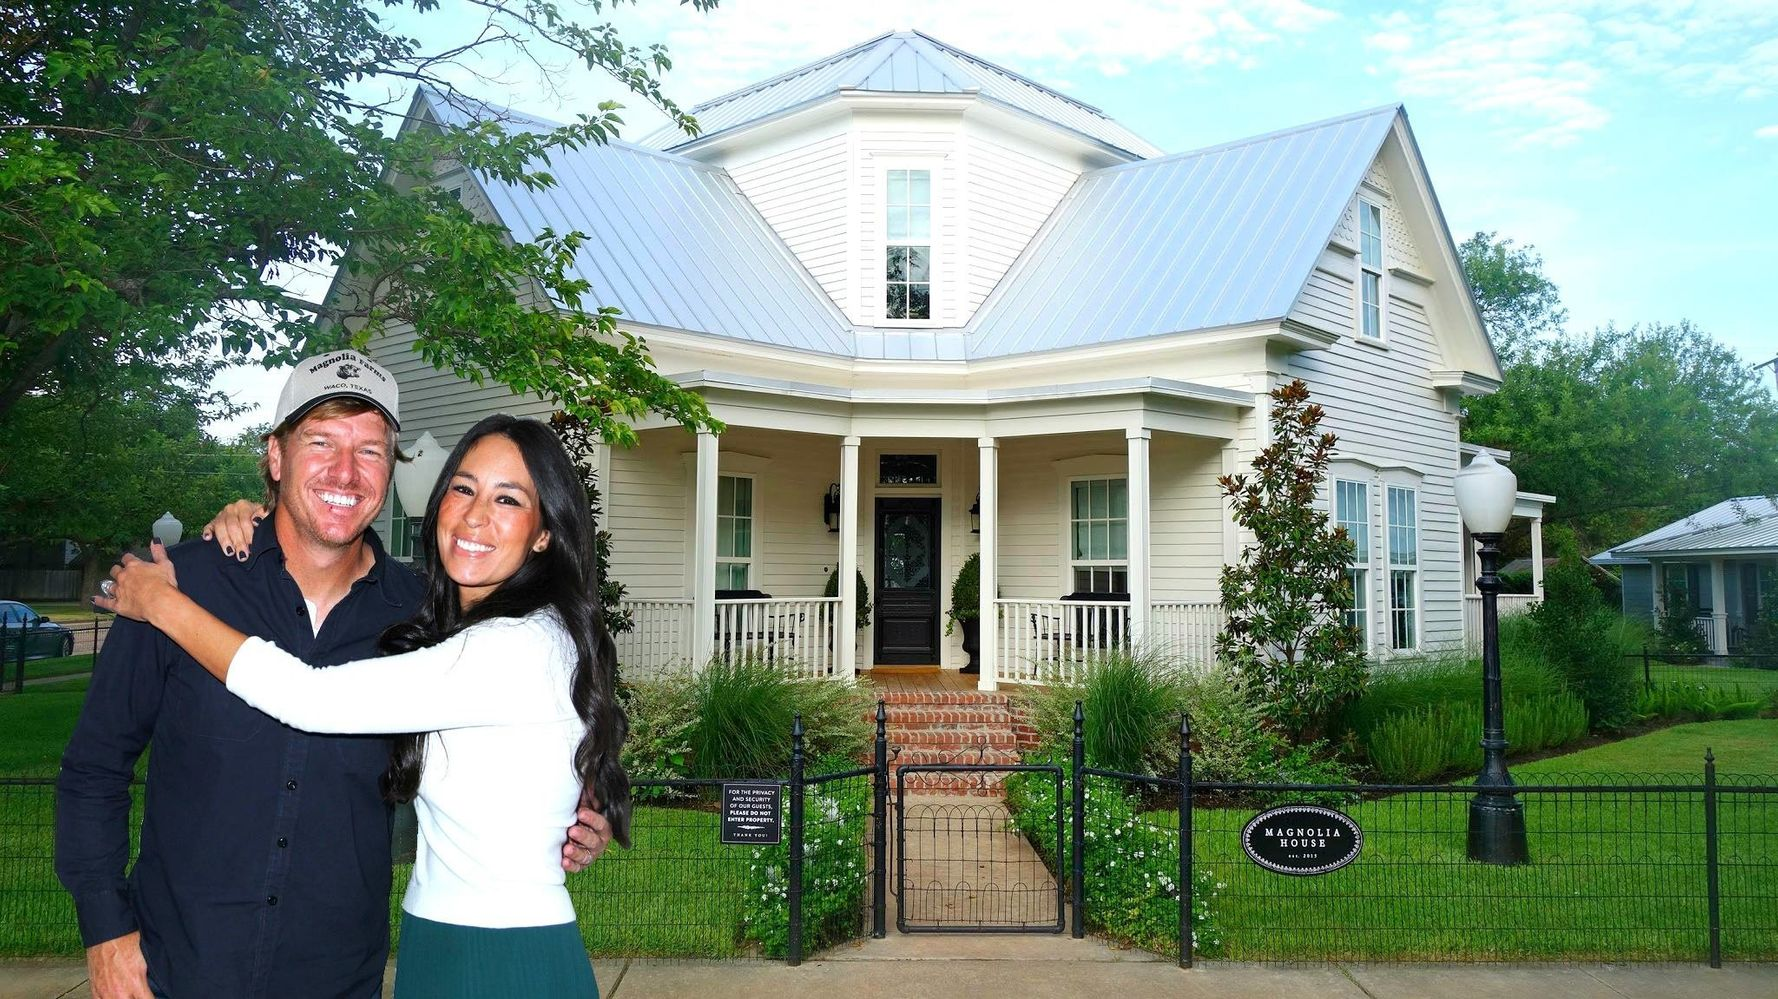 This Is What It S Like To Stay At Chip And Joanna Gaines Magnolia House Huffpost Life